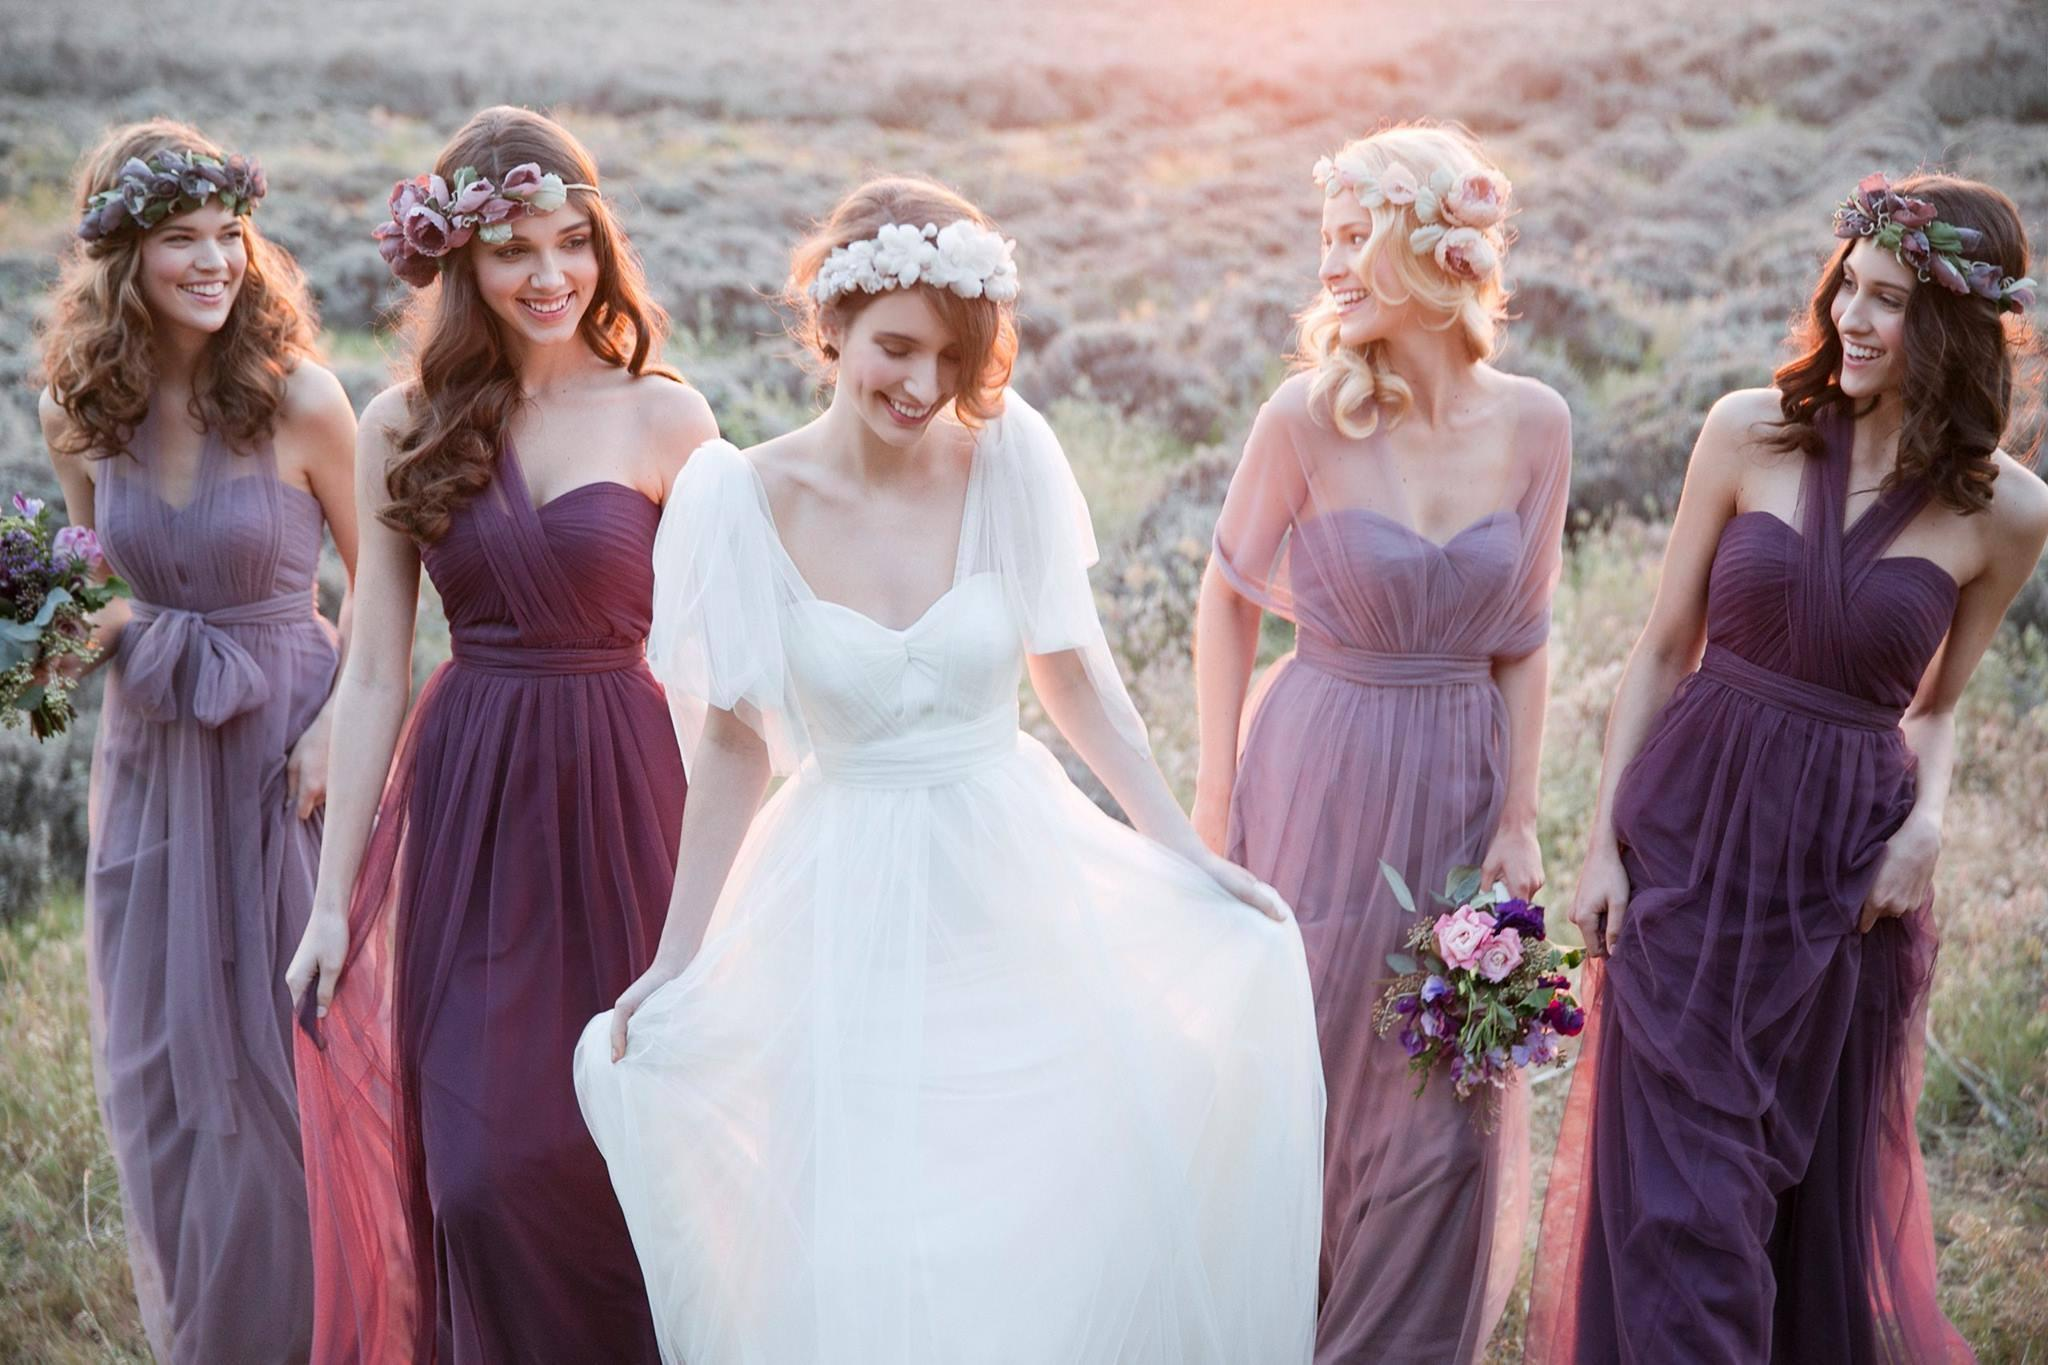 usa cheap sale retail prices shop for luxury Soft Tulle Convertible Bridesmaid Dress Lace Up 2018 Floor Length Formal  Dress Custom Made Drop Shipping Unique Bridesmaid Dresses Brides Maid  Dresses ...